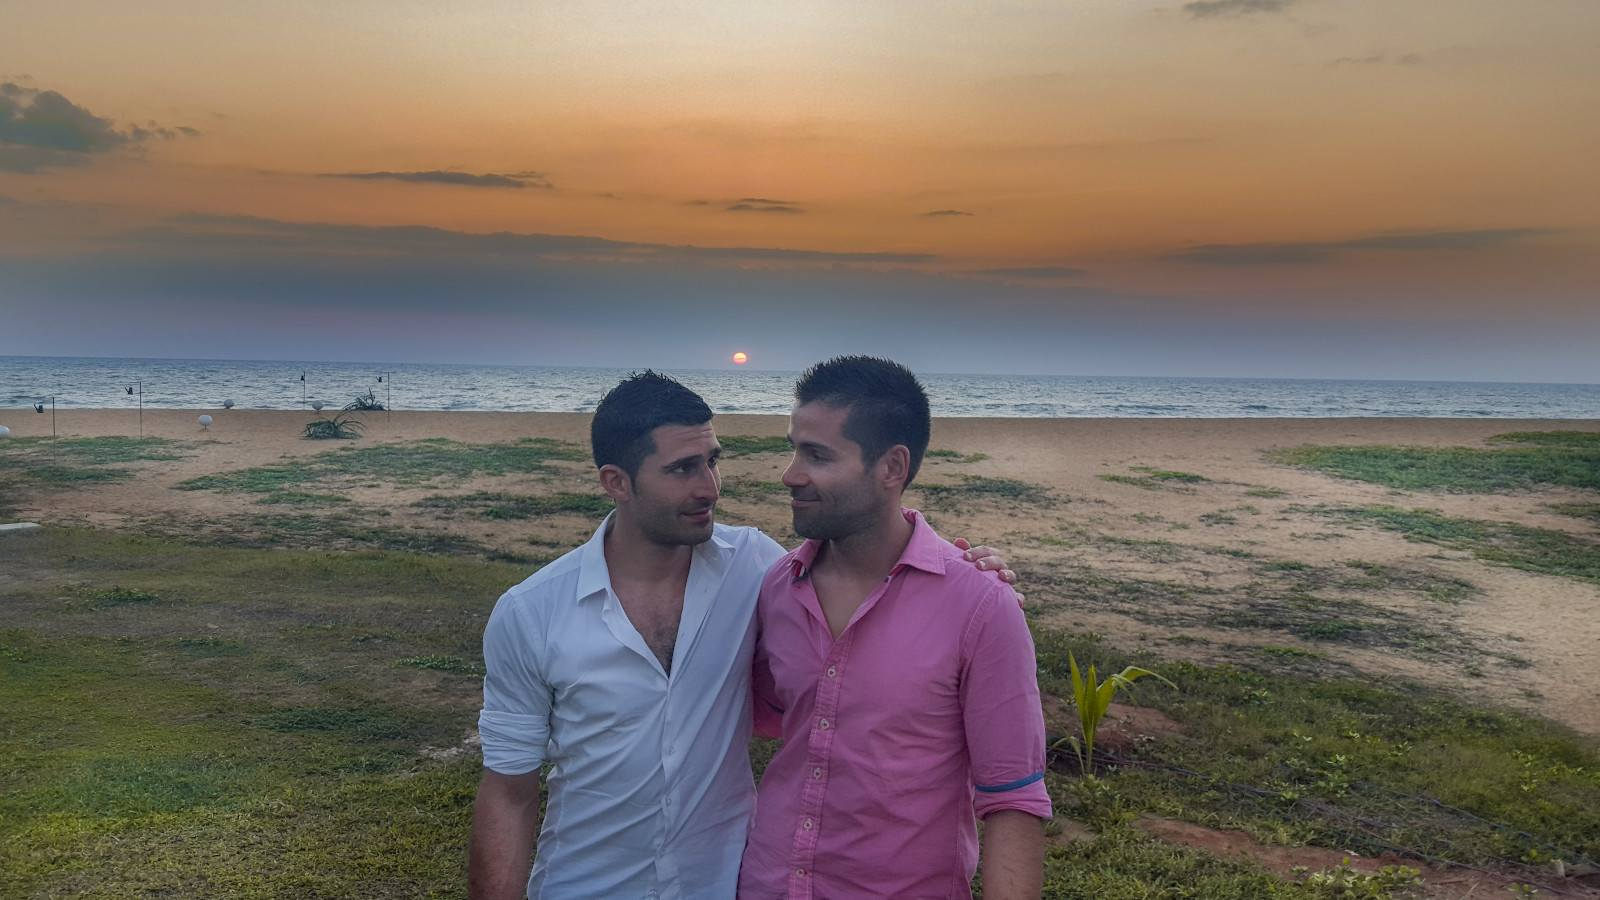 This is our gay travel guide to Negombo, the Sri Lankan seaside town with a small gay scene!